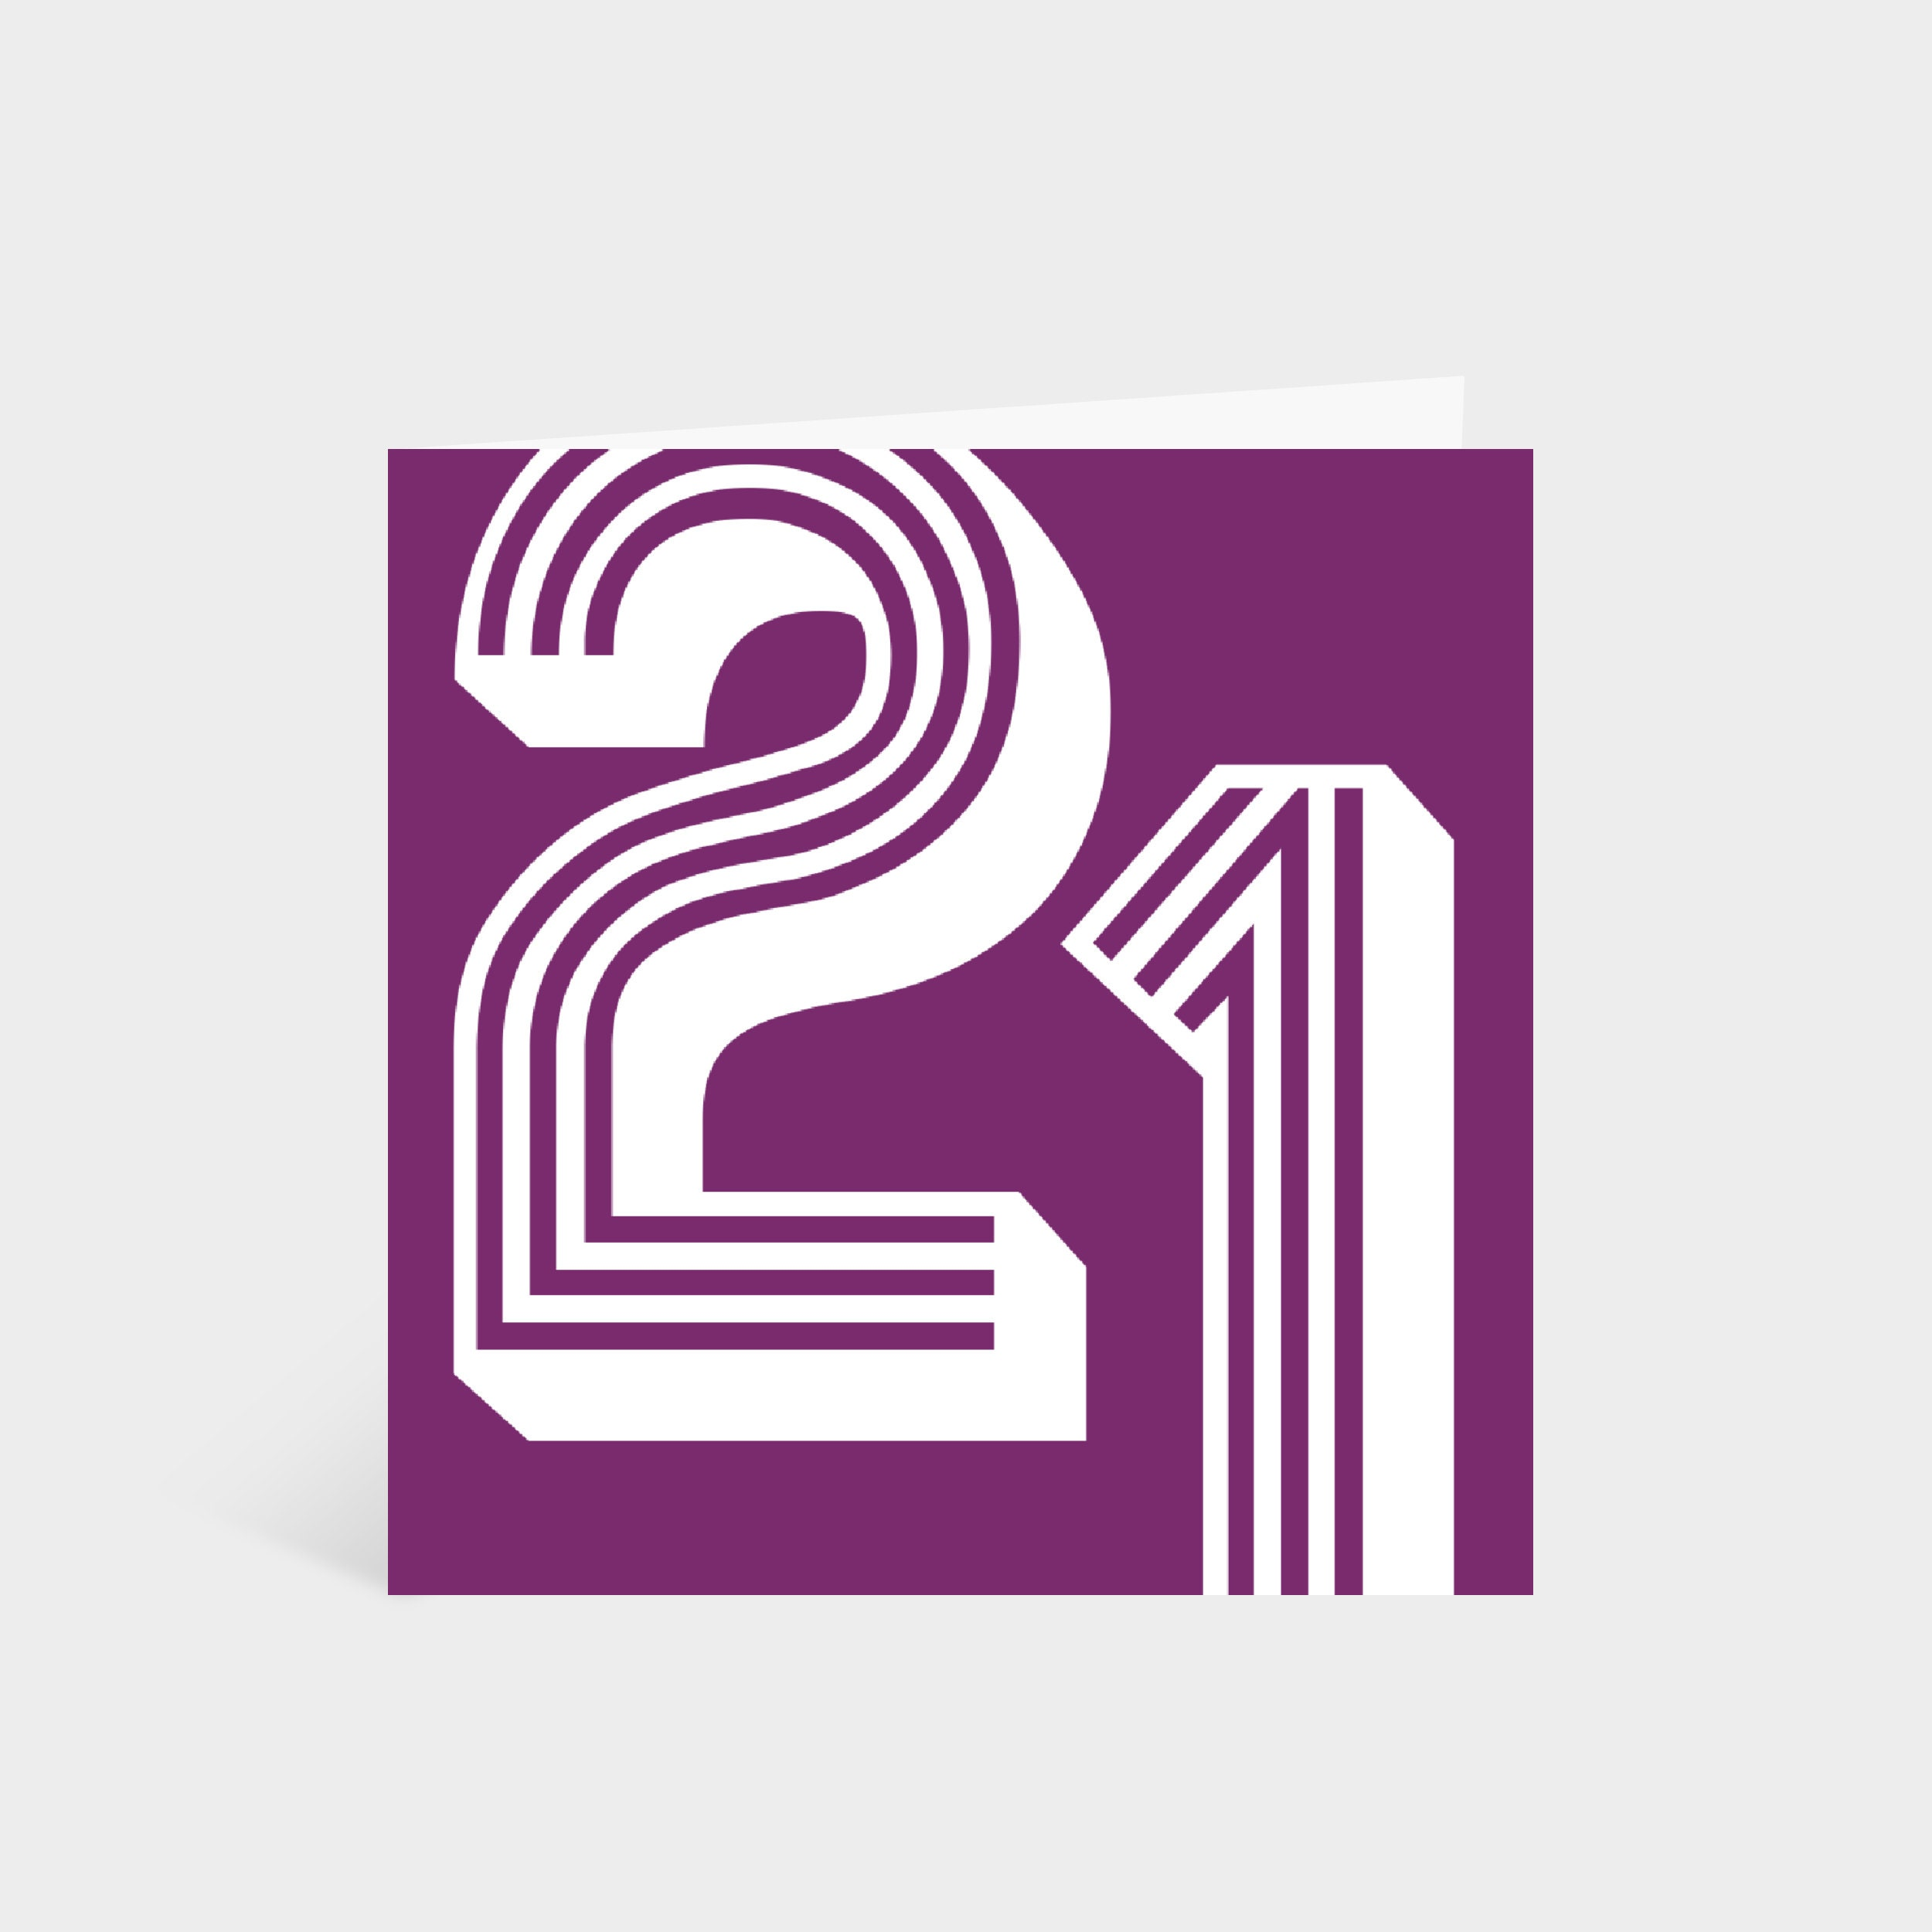 Standing square purple card with the number '21' in a white large retro font